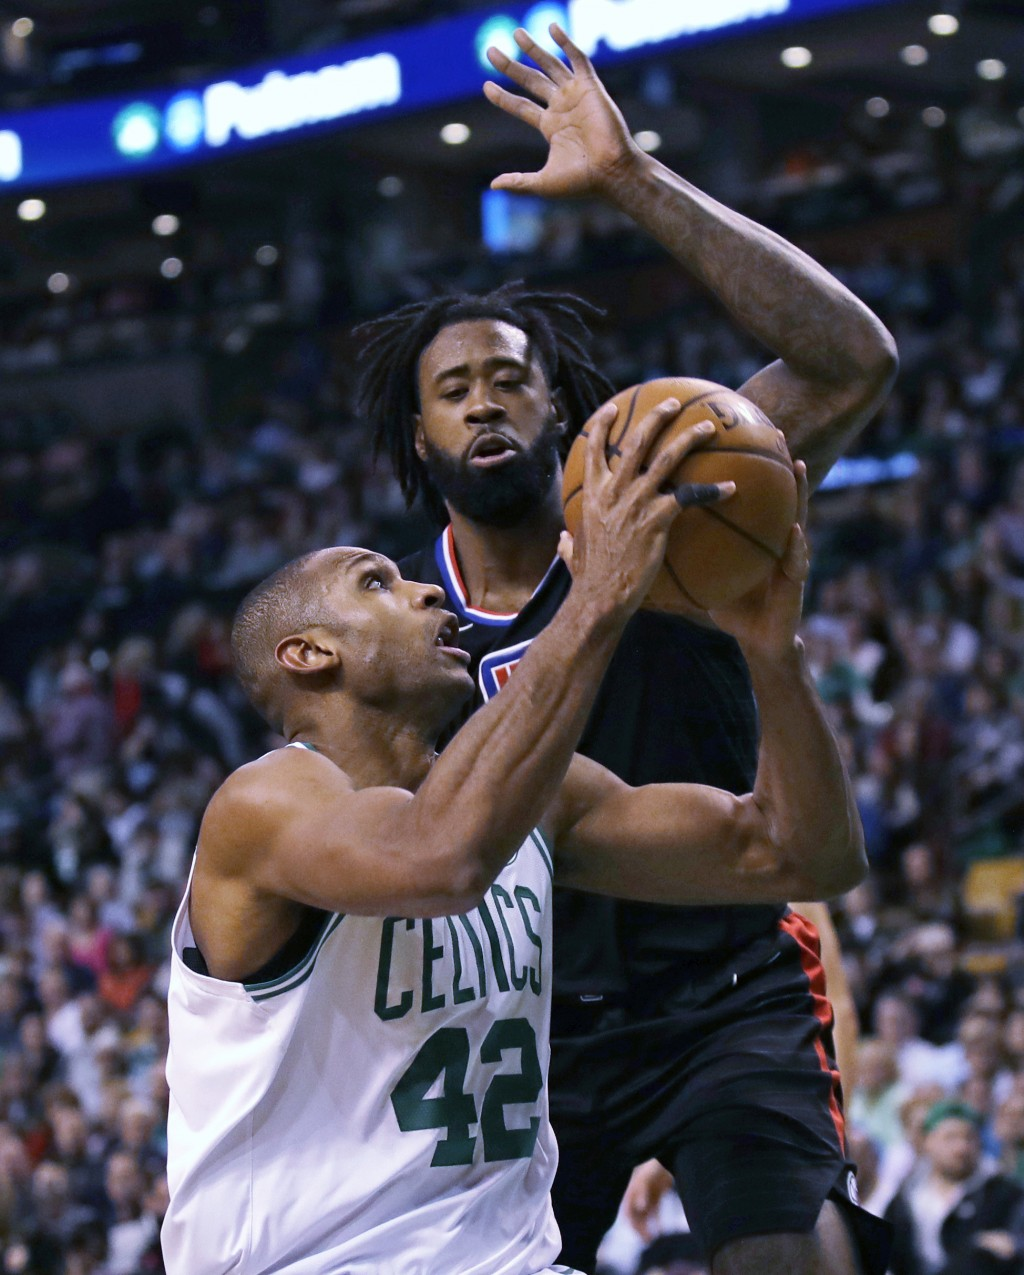 Los Angeles Clippers center DeAndre Jordan, rear, prepares to block a shot by Boston Celtics forward Al Horford (42) during the second quarter of an N